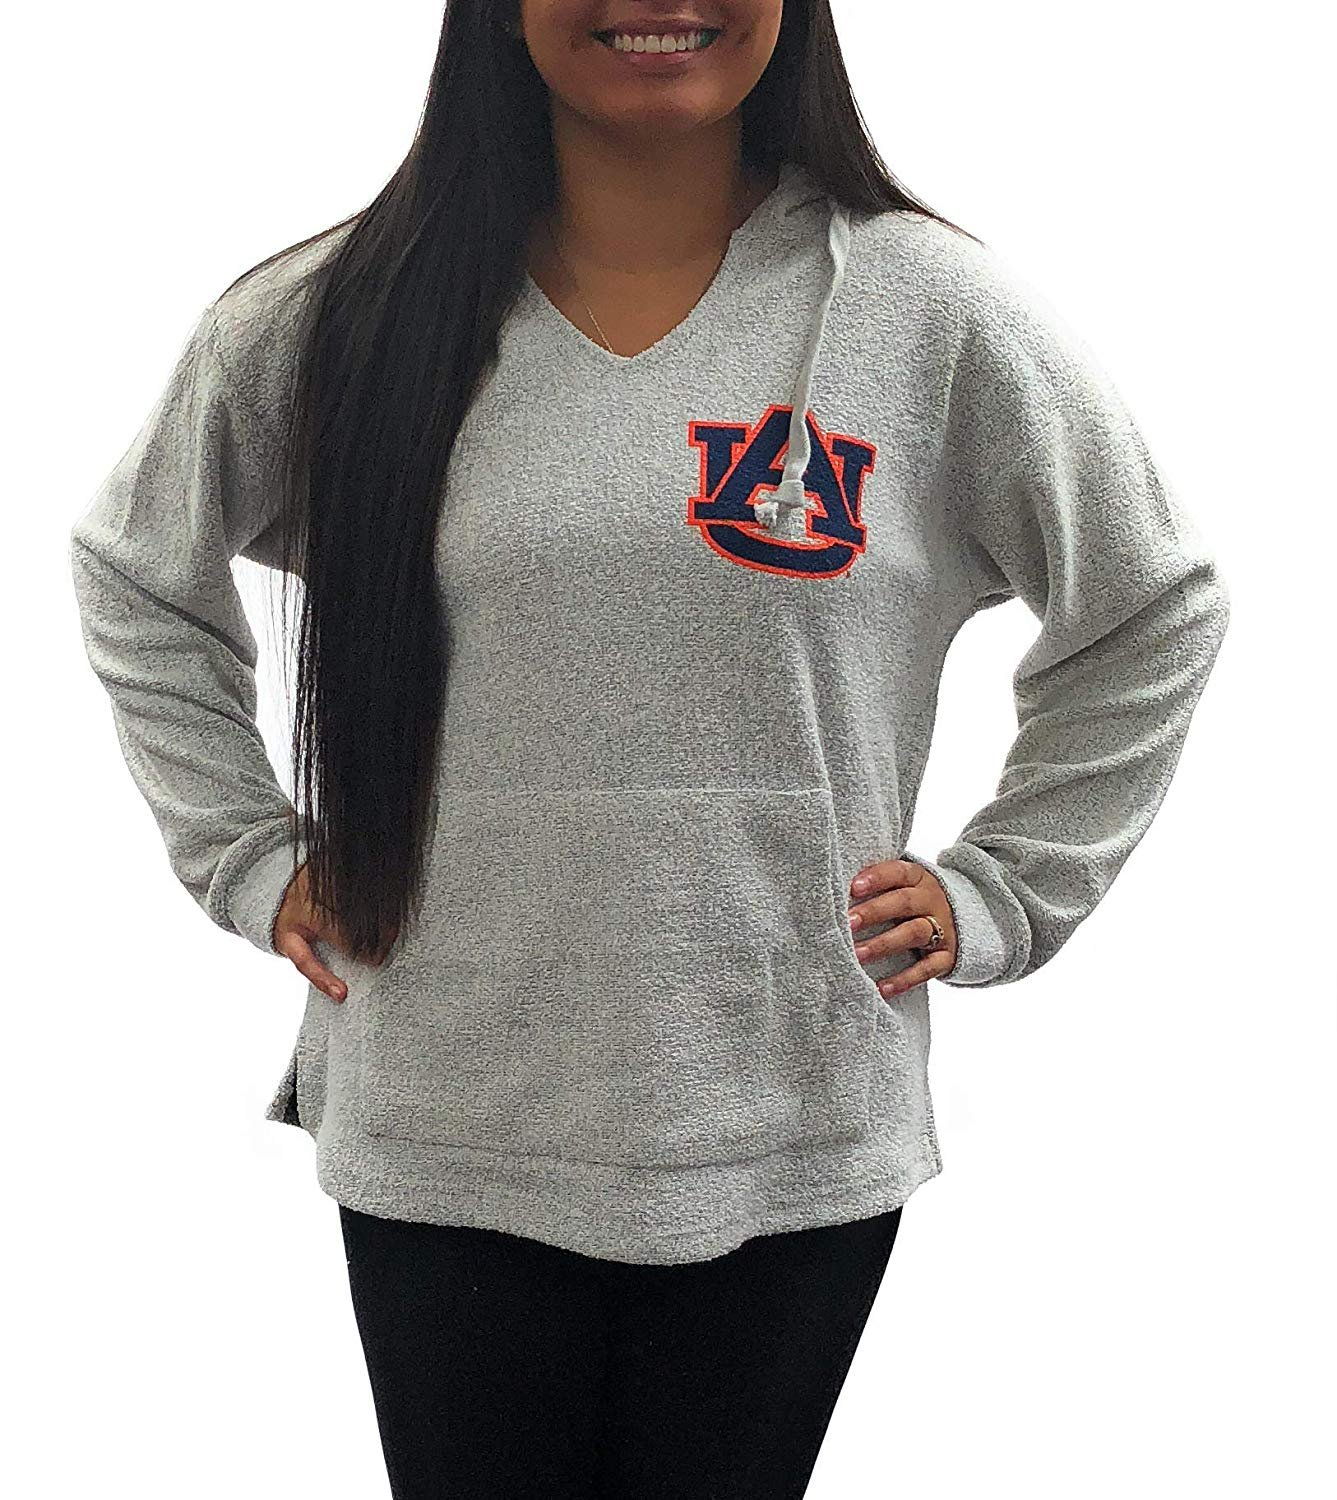 University of Auburn Tigers Womens Apparel Hooded Comfy Terry Sweatshirt Clothing by Royce Apparel